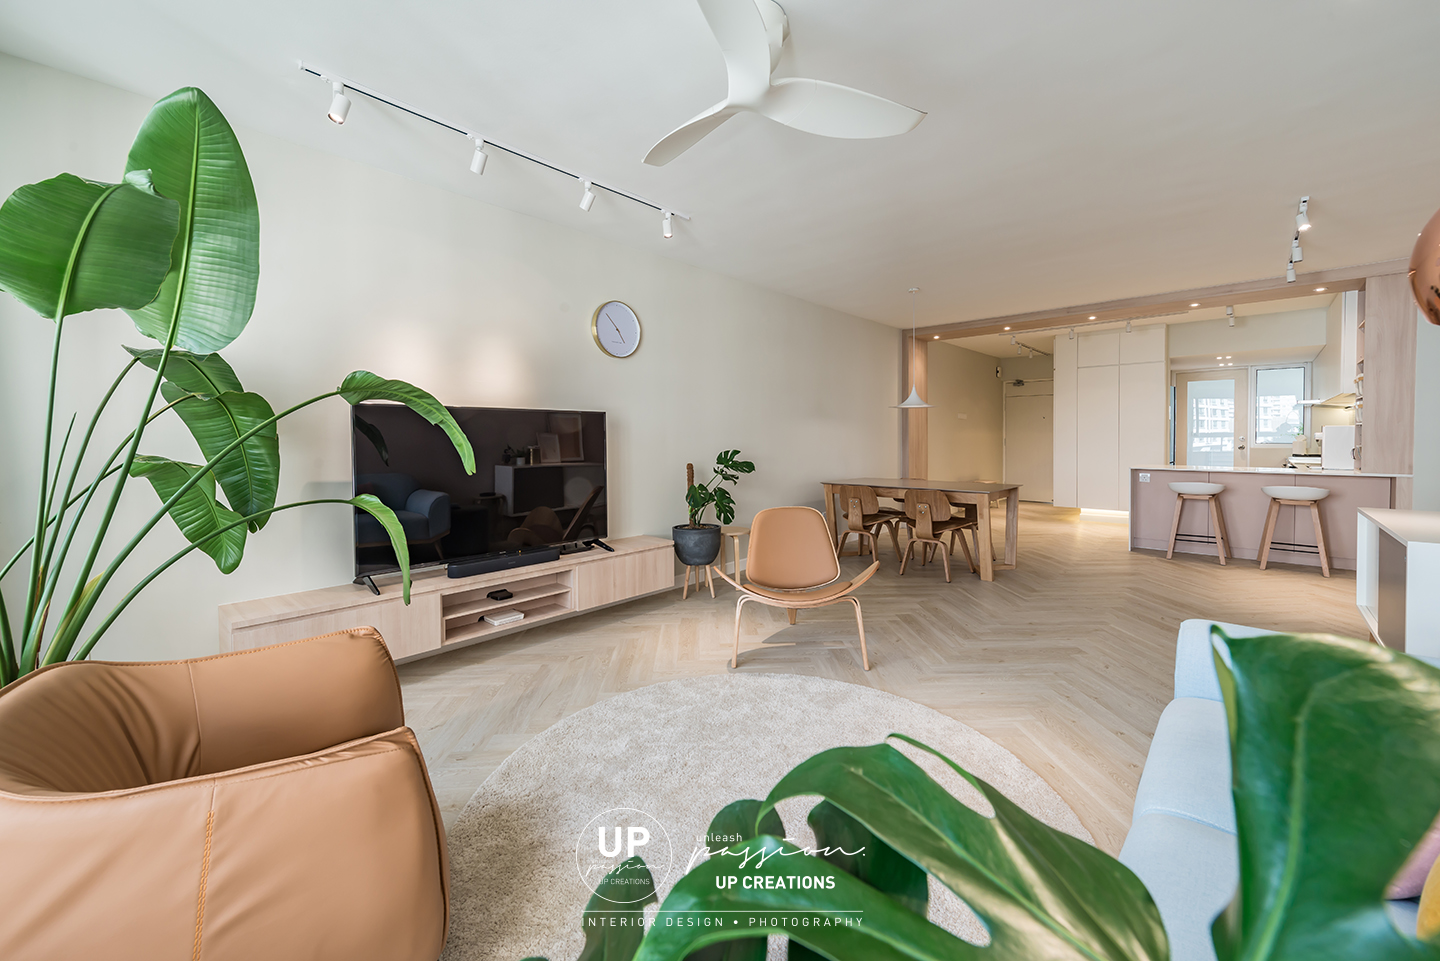 Mont Kiara Pines condo living area in minimalist style with a simple TV console and greens for the highlight